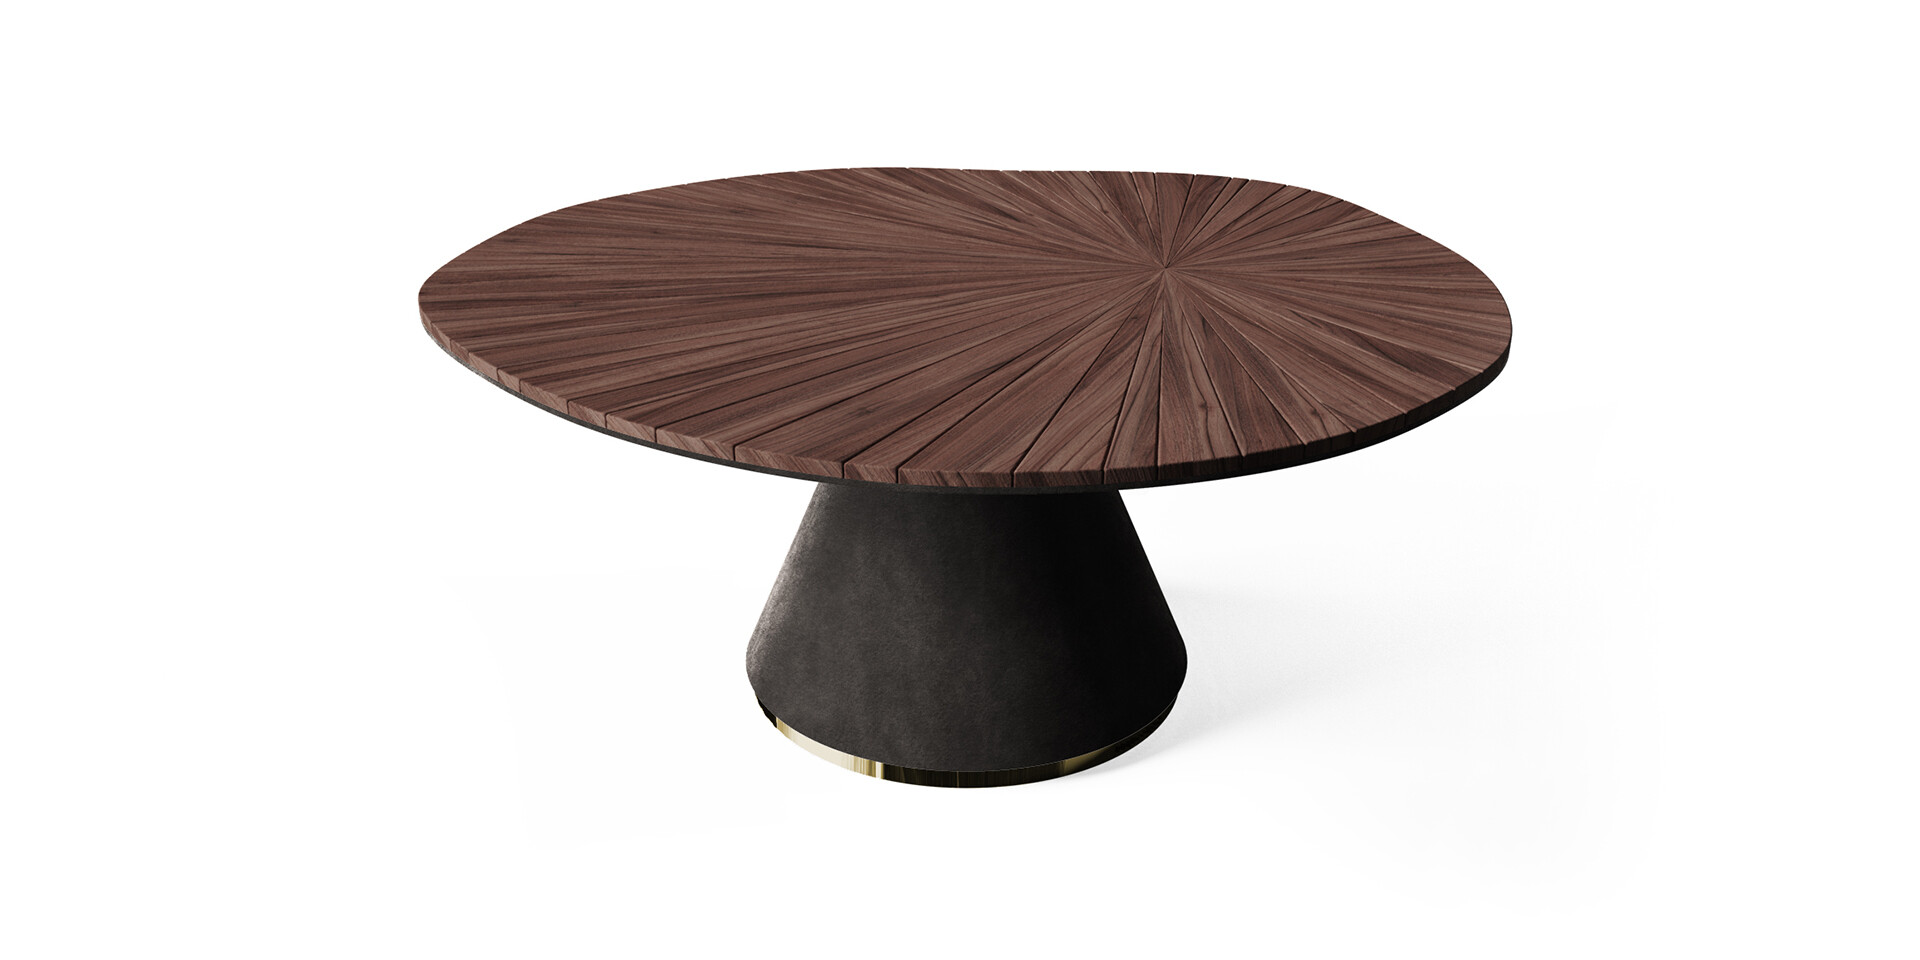 DARVAZA DINING TABLE side view ALMA de LUCE